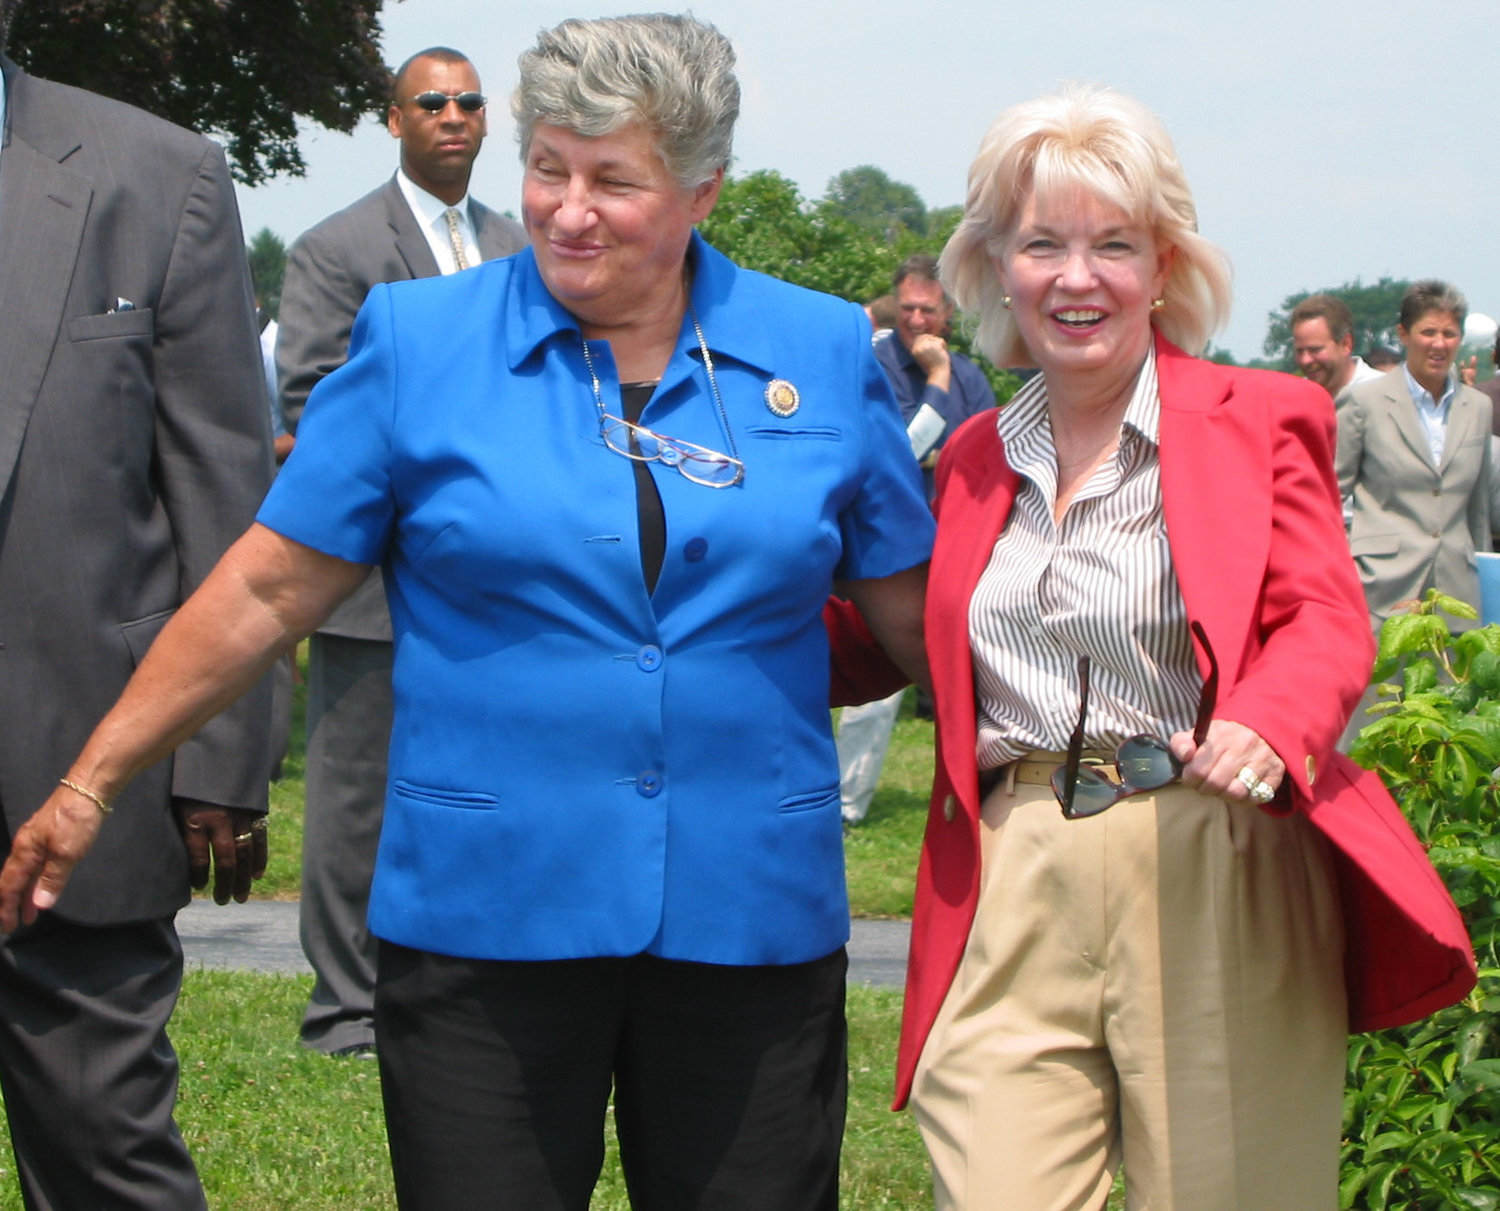 Ms. Holland, right, is pictured with then-Gov. Ruth Ann Minner at the Blent farm in Smyrna, which was preserved from development by the state of Delaware.